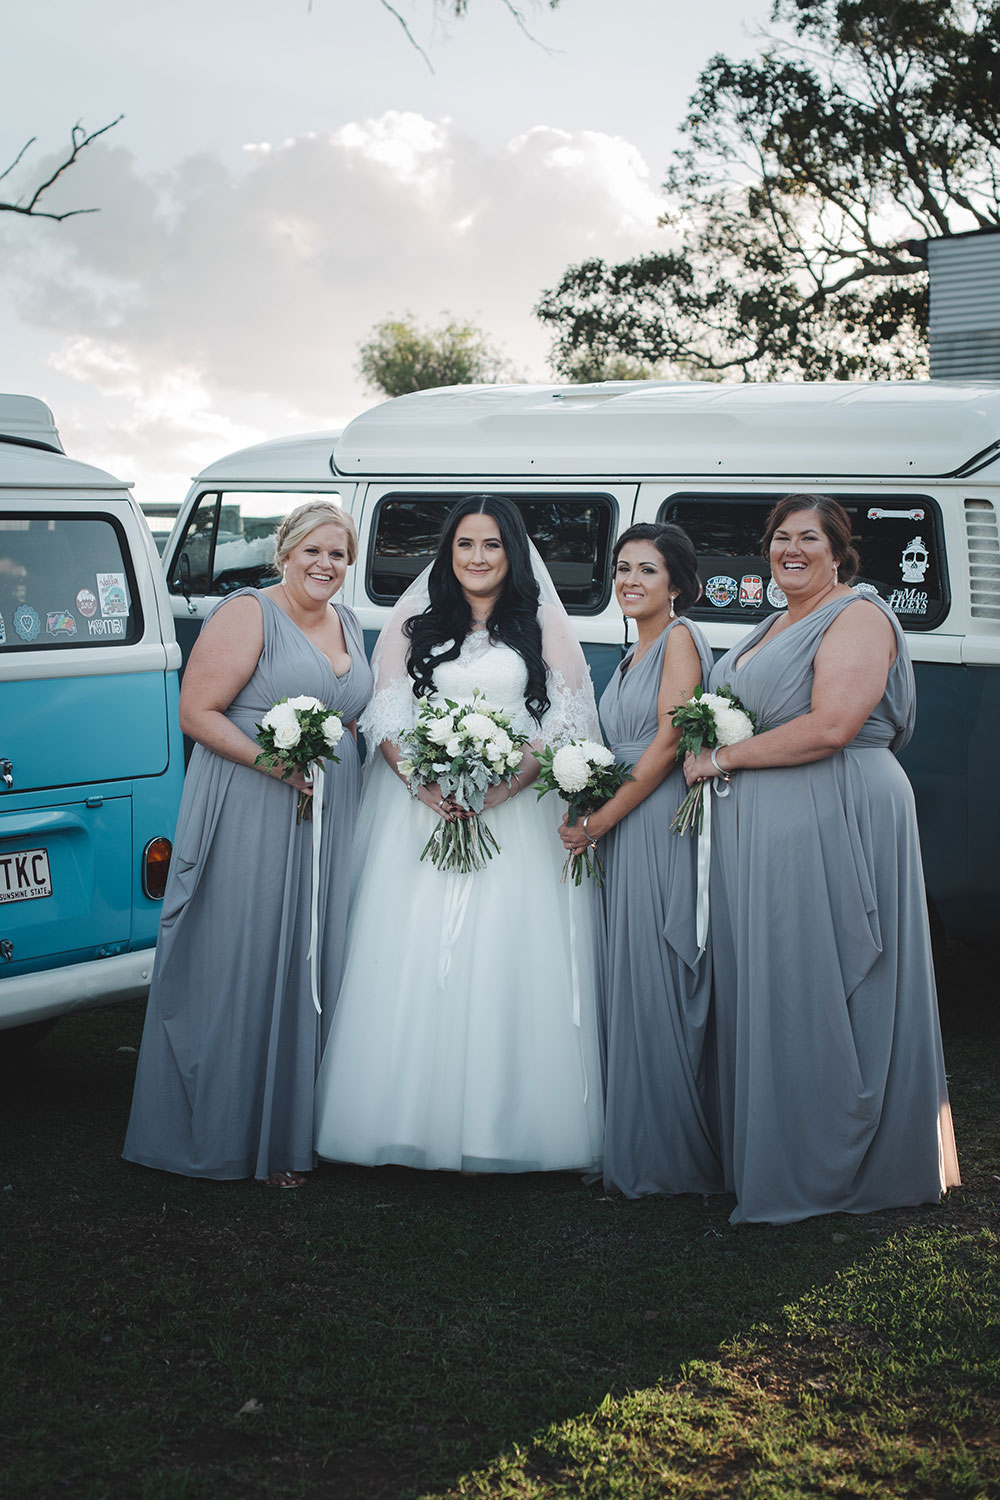 Julieanne and her bridesmaids